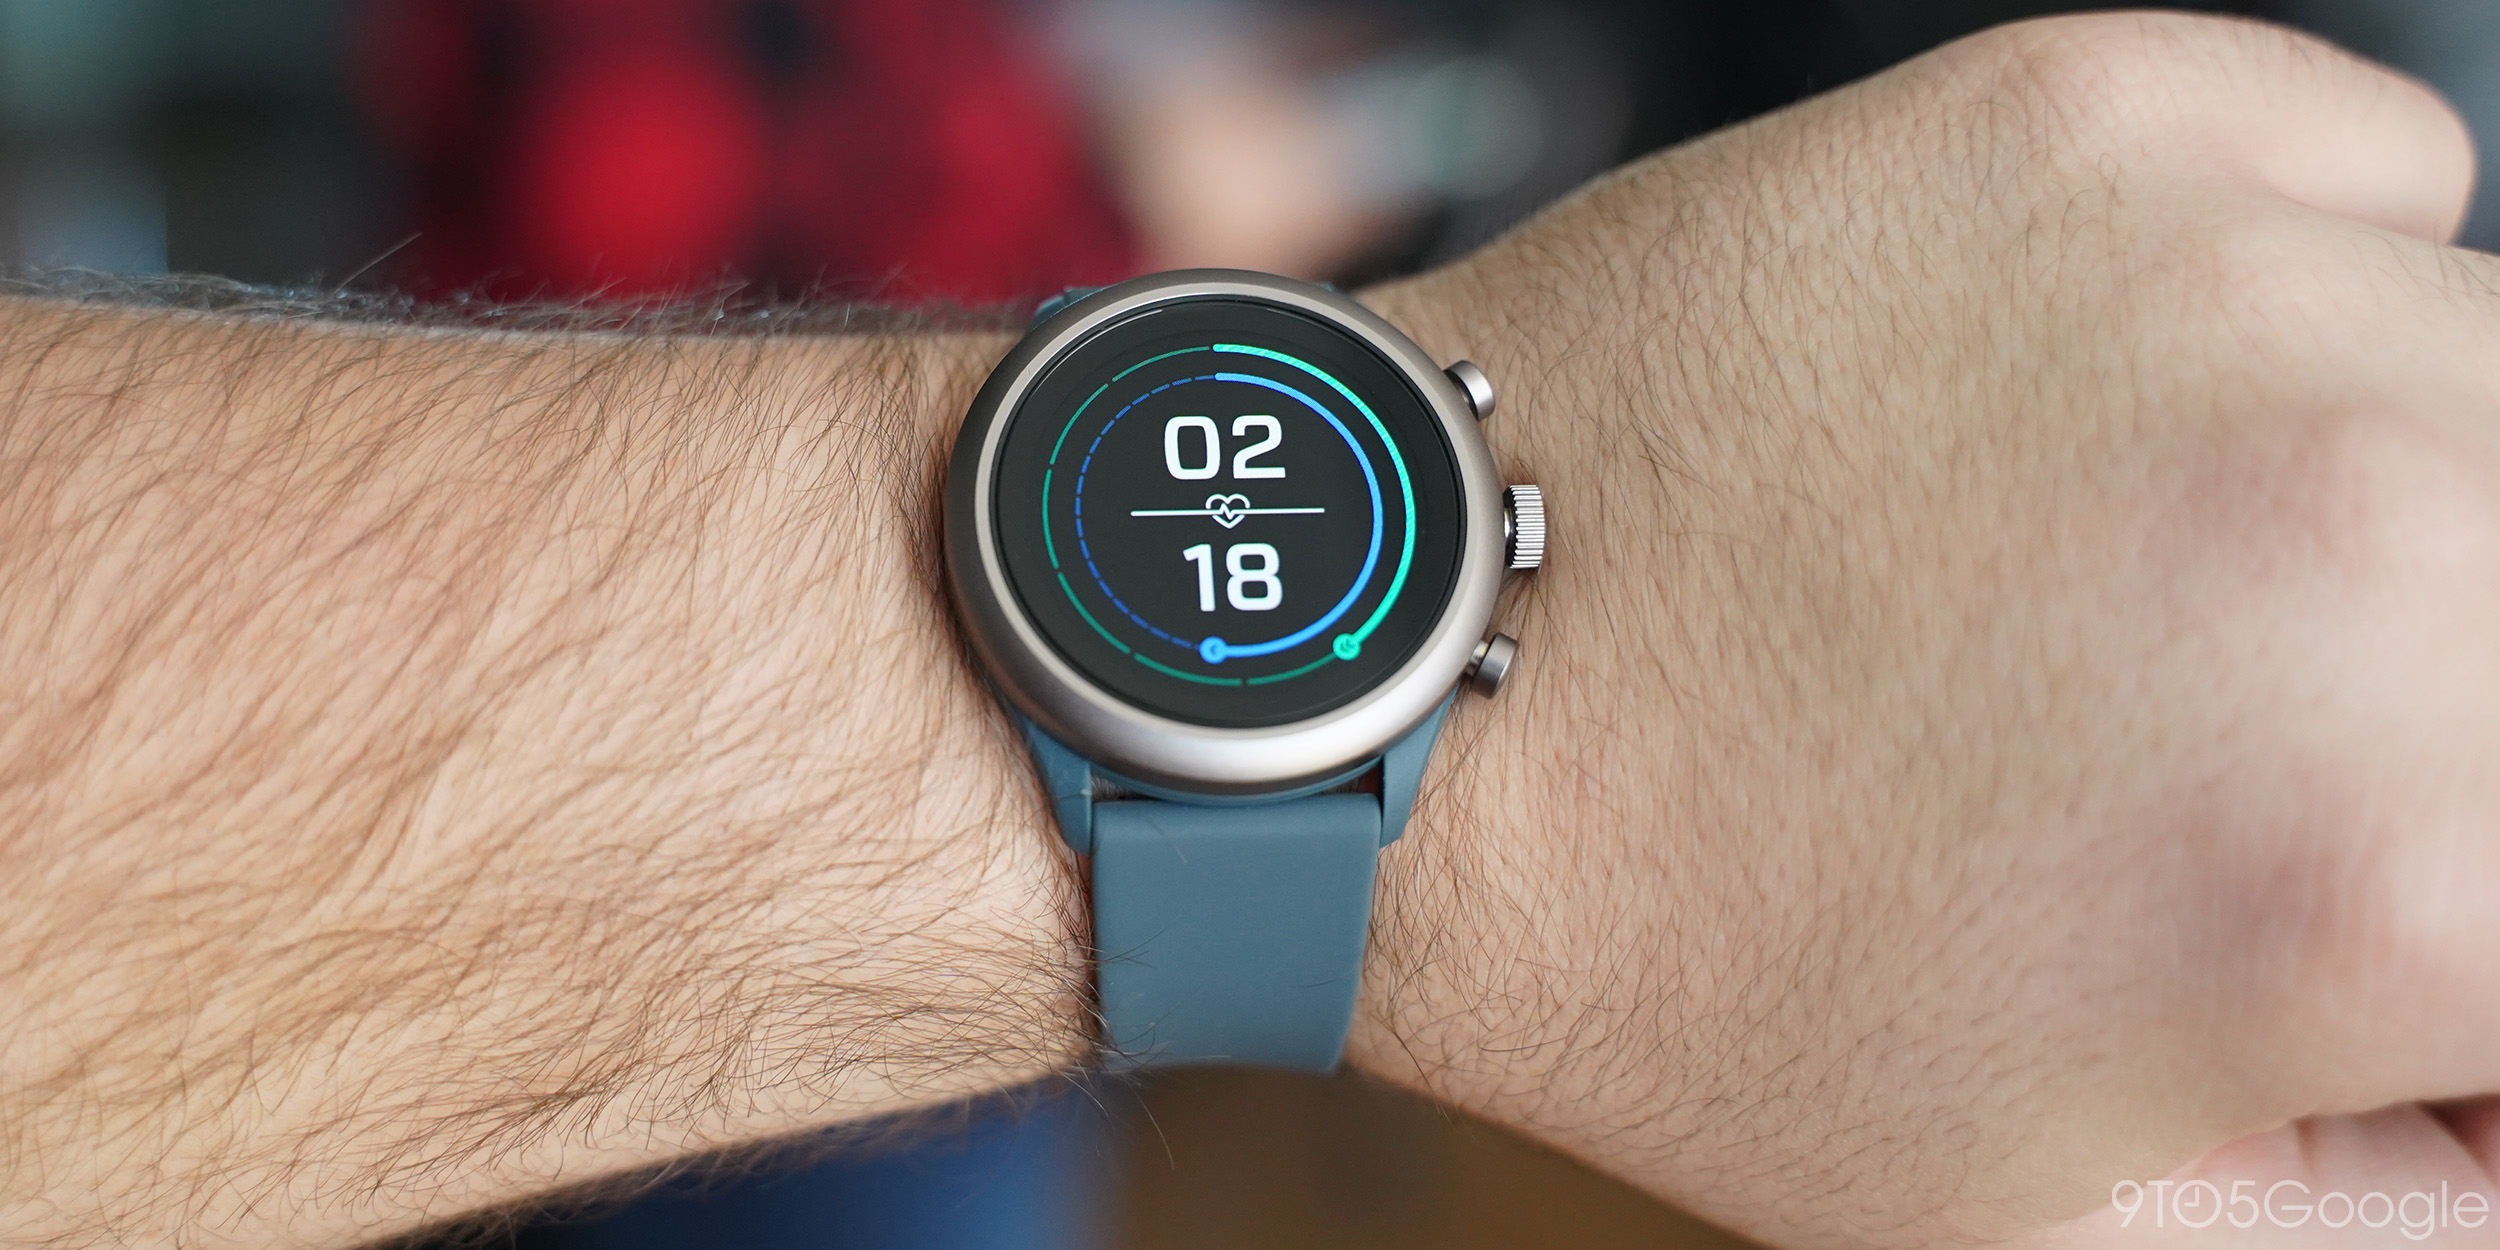 Fossil Sport Review: The best Wear OS watch for most people [Video]